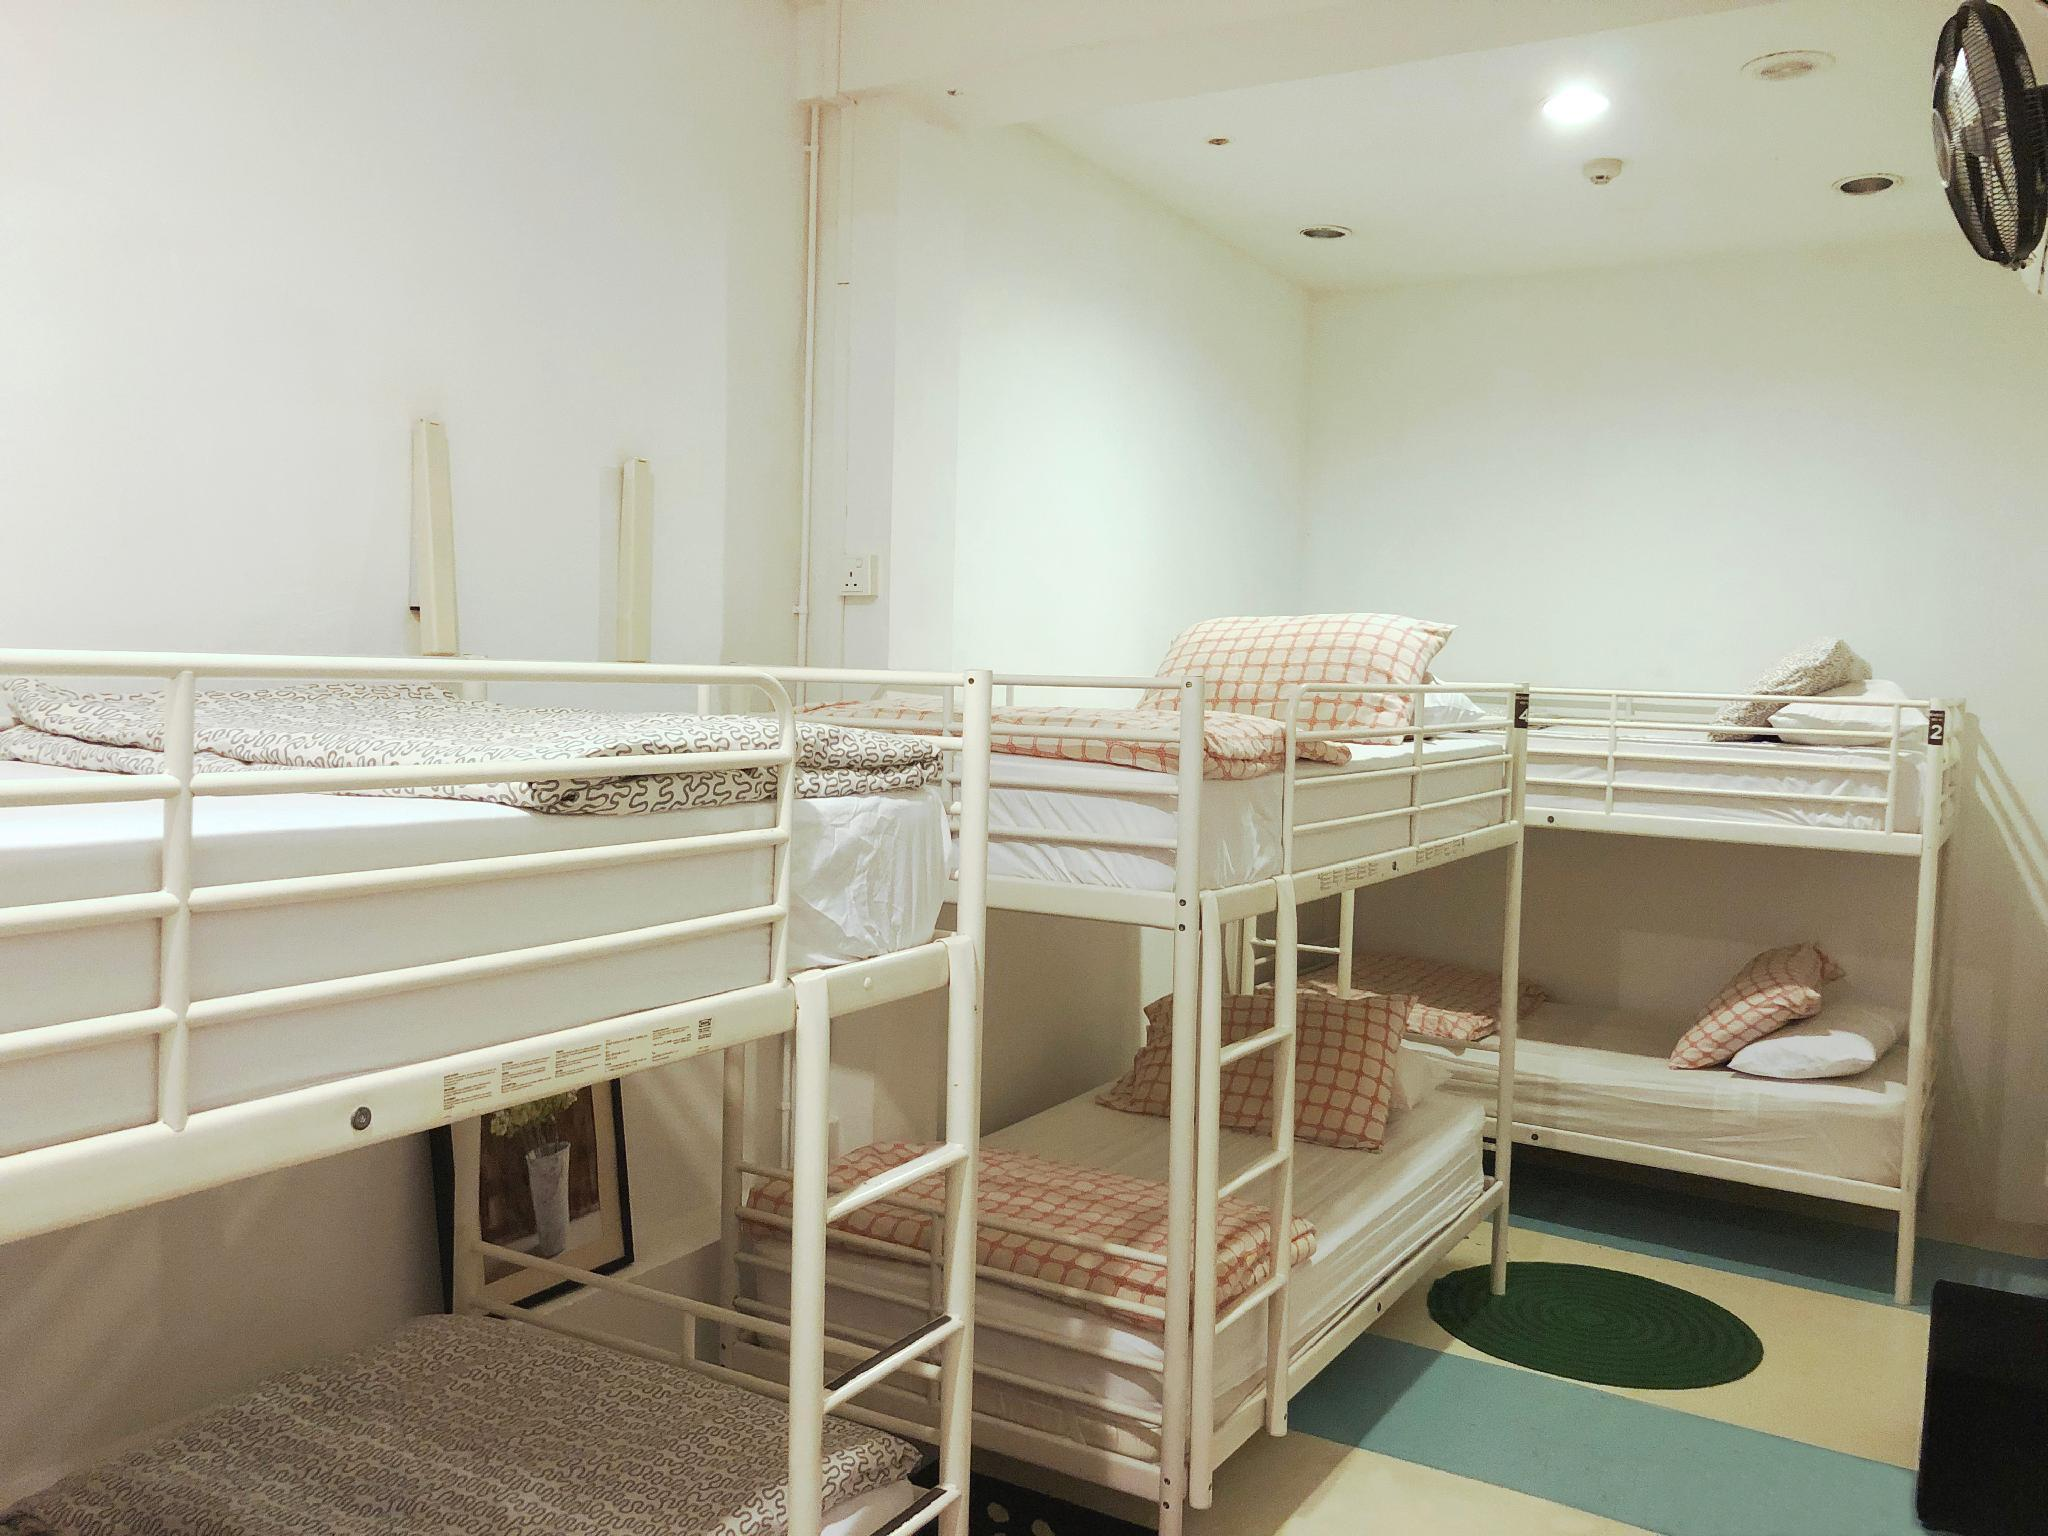 2 People in 6-Bed Dormitory - Female Only